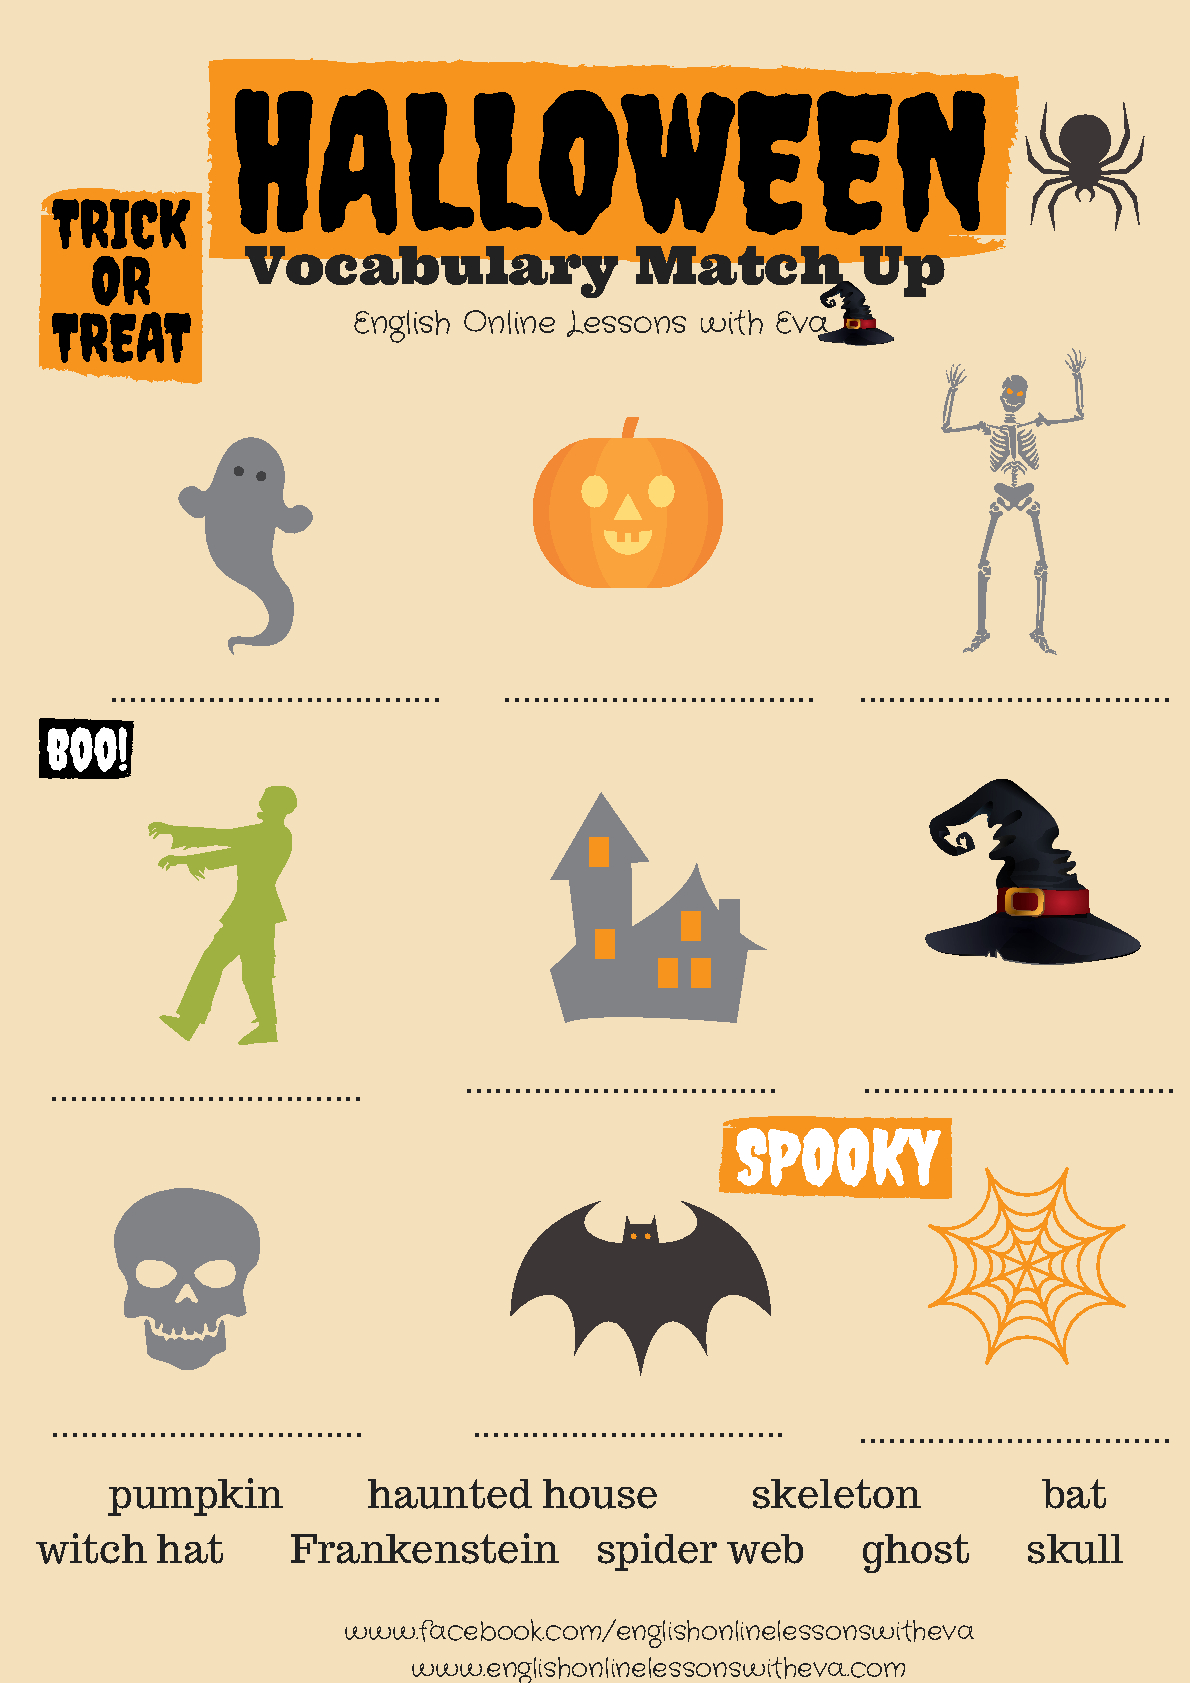 214 Free Halloween Worksheets - Free Printable French Halloween Worksheets